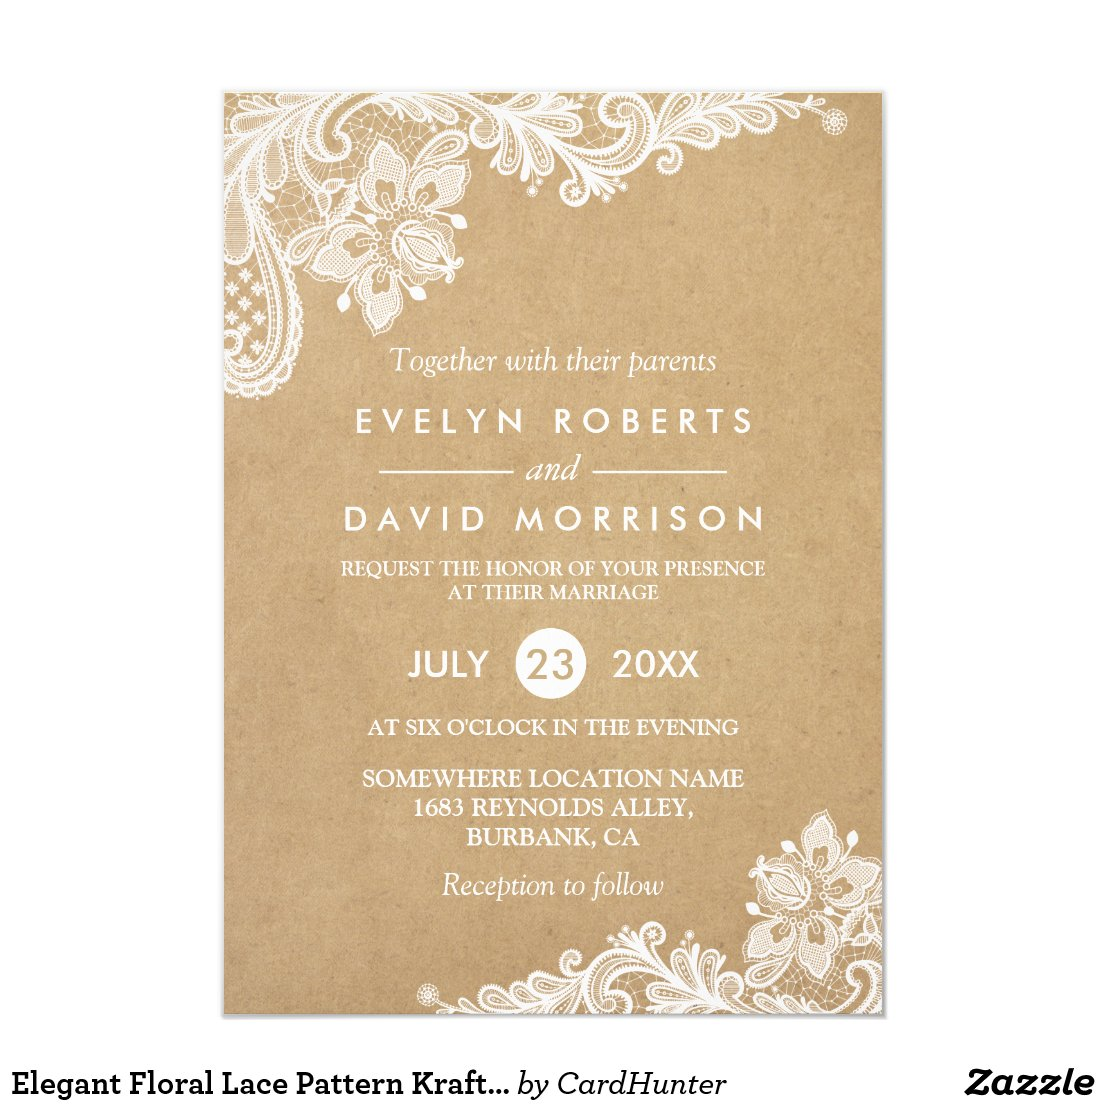 Elegant Floral Lace Pattern Kraft | Formal Wedding